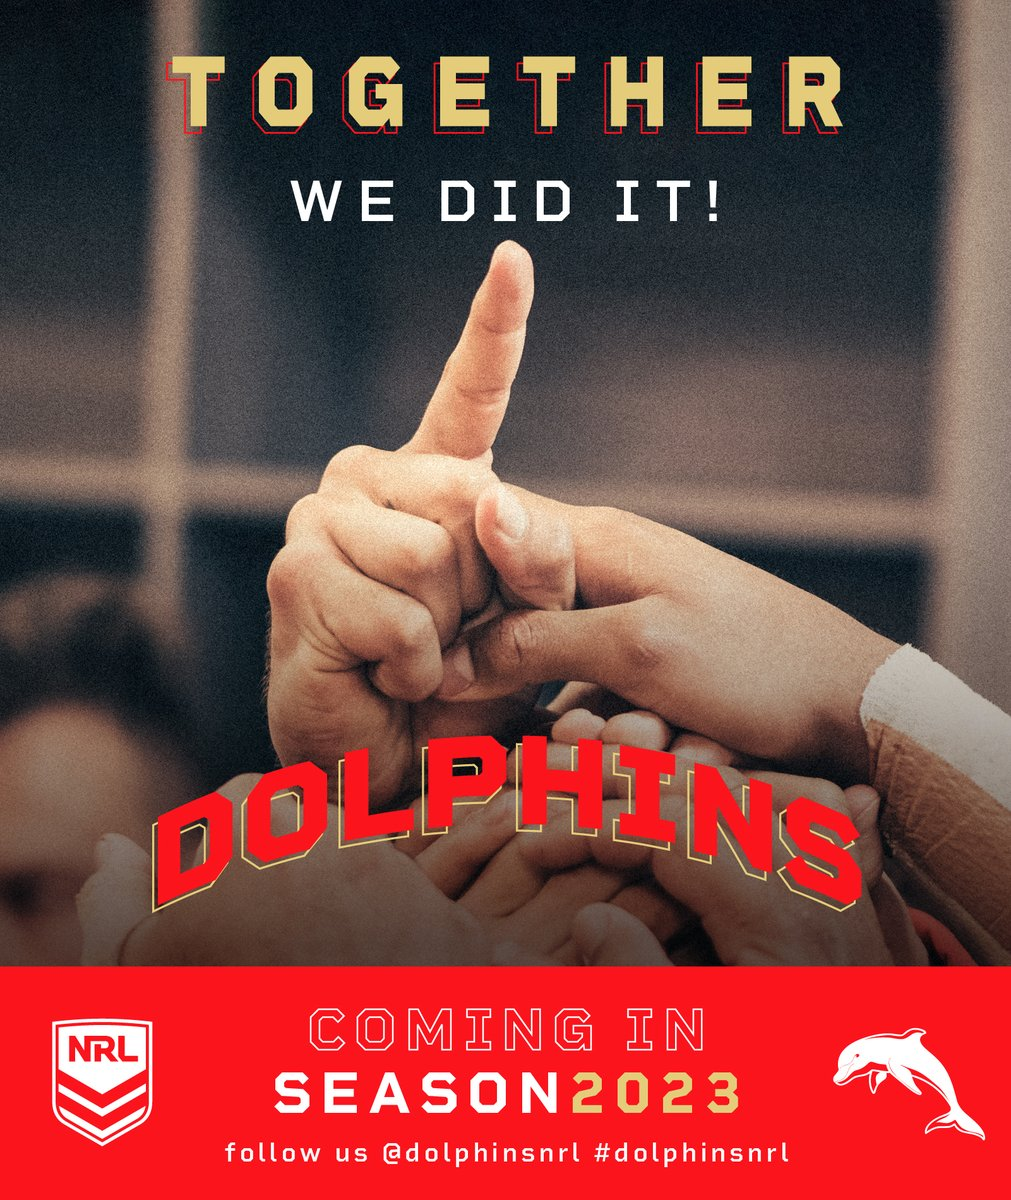 This is the first time that the @NRL has announced a new team for their competition since 2005. The @GCTitans joined the comp in 2007. This is excellent news for @DolphinsRLFC - a powerhouse rugby league club.